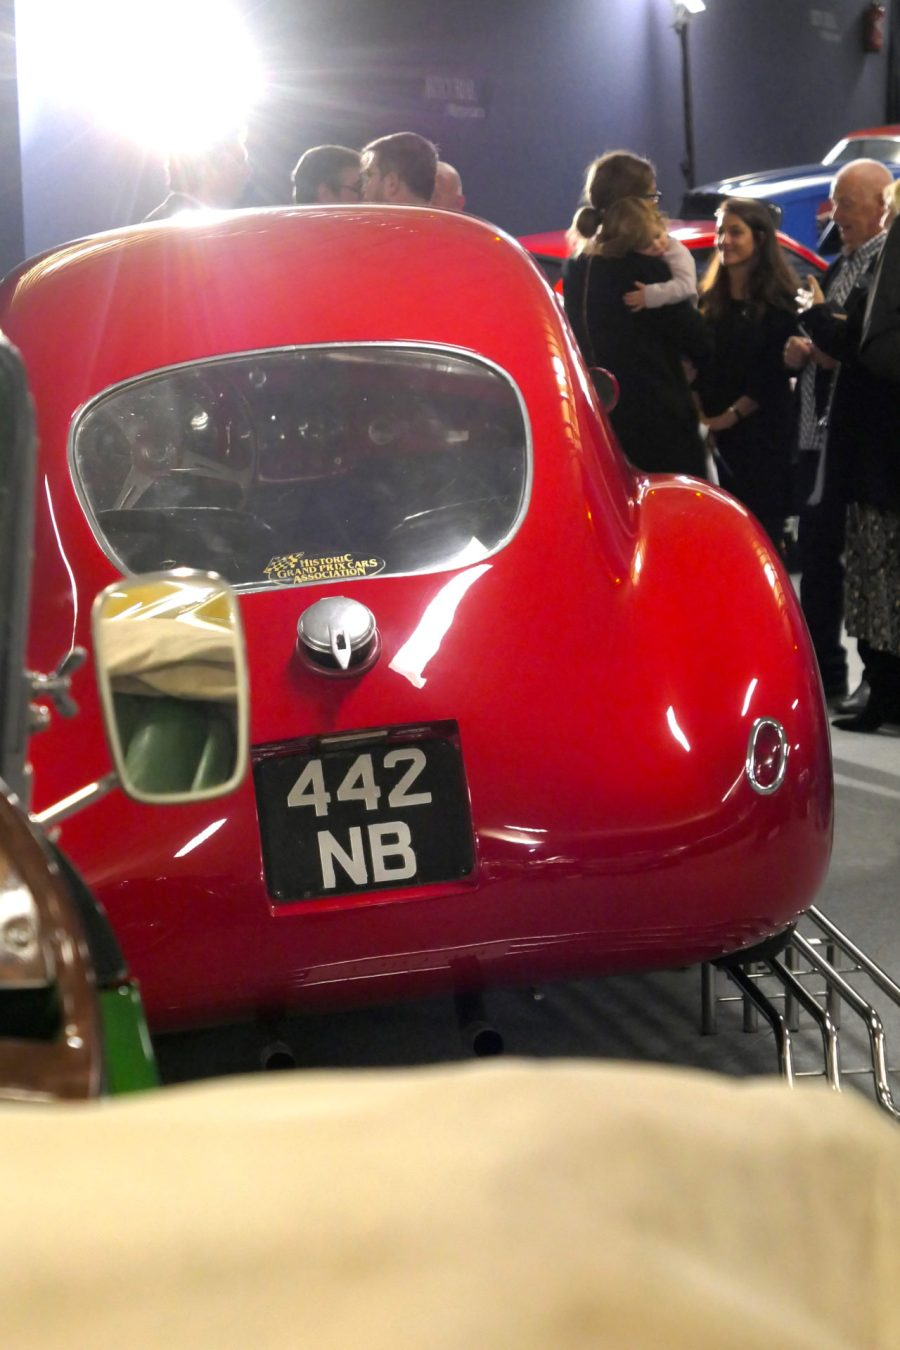 roadrugcars road rug cars artcurial sur les champs fiat 8V back side